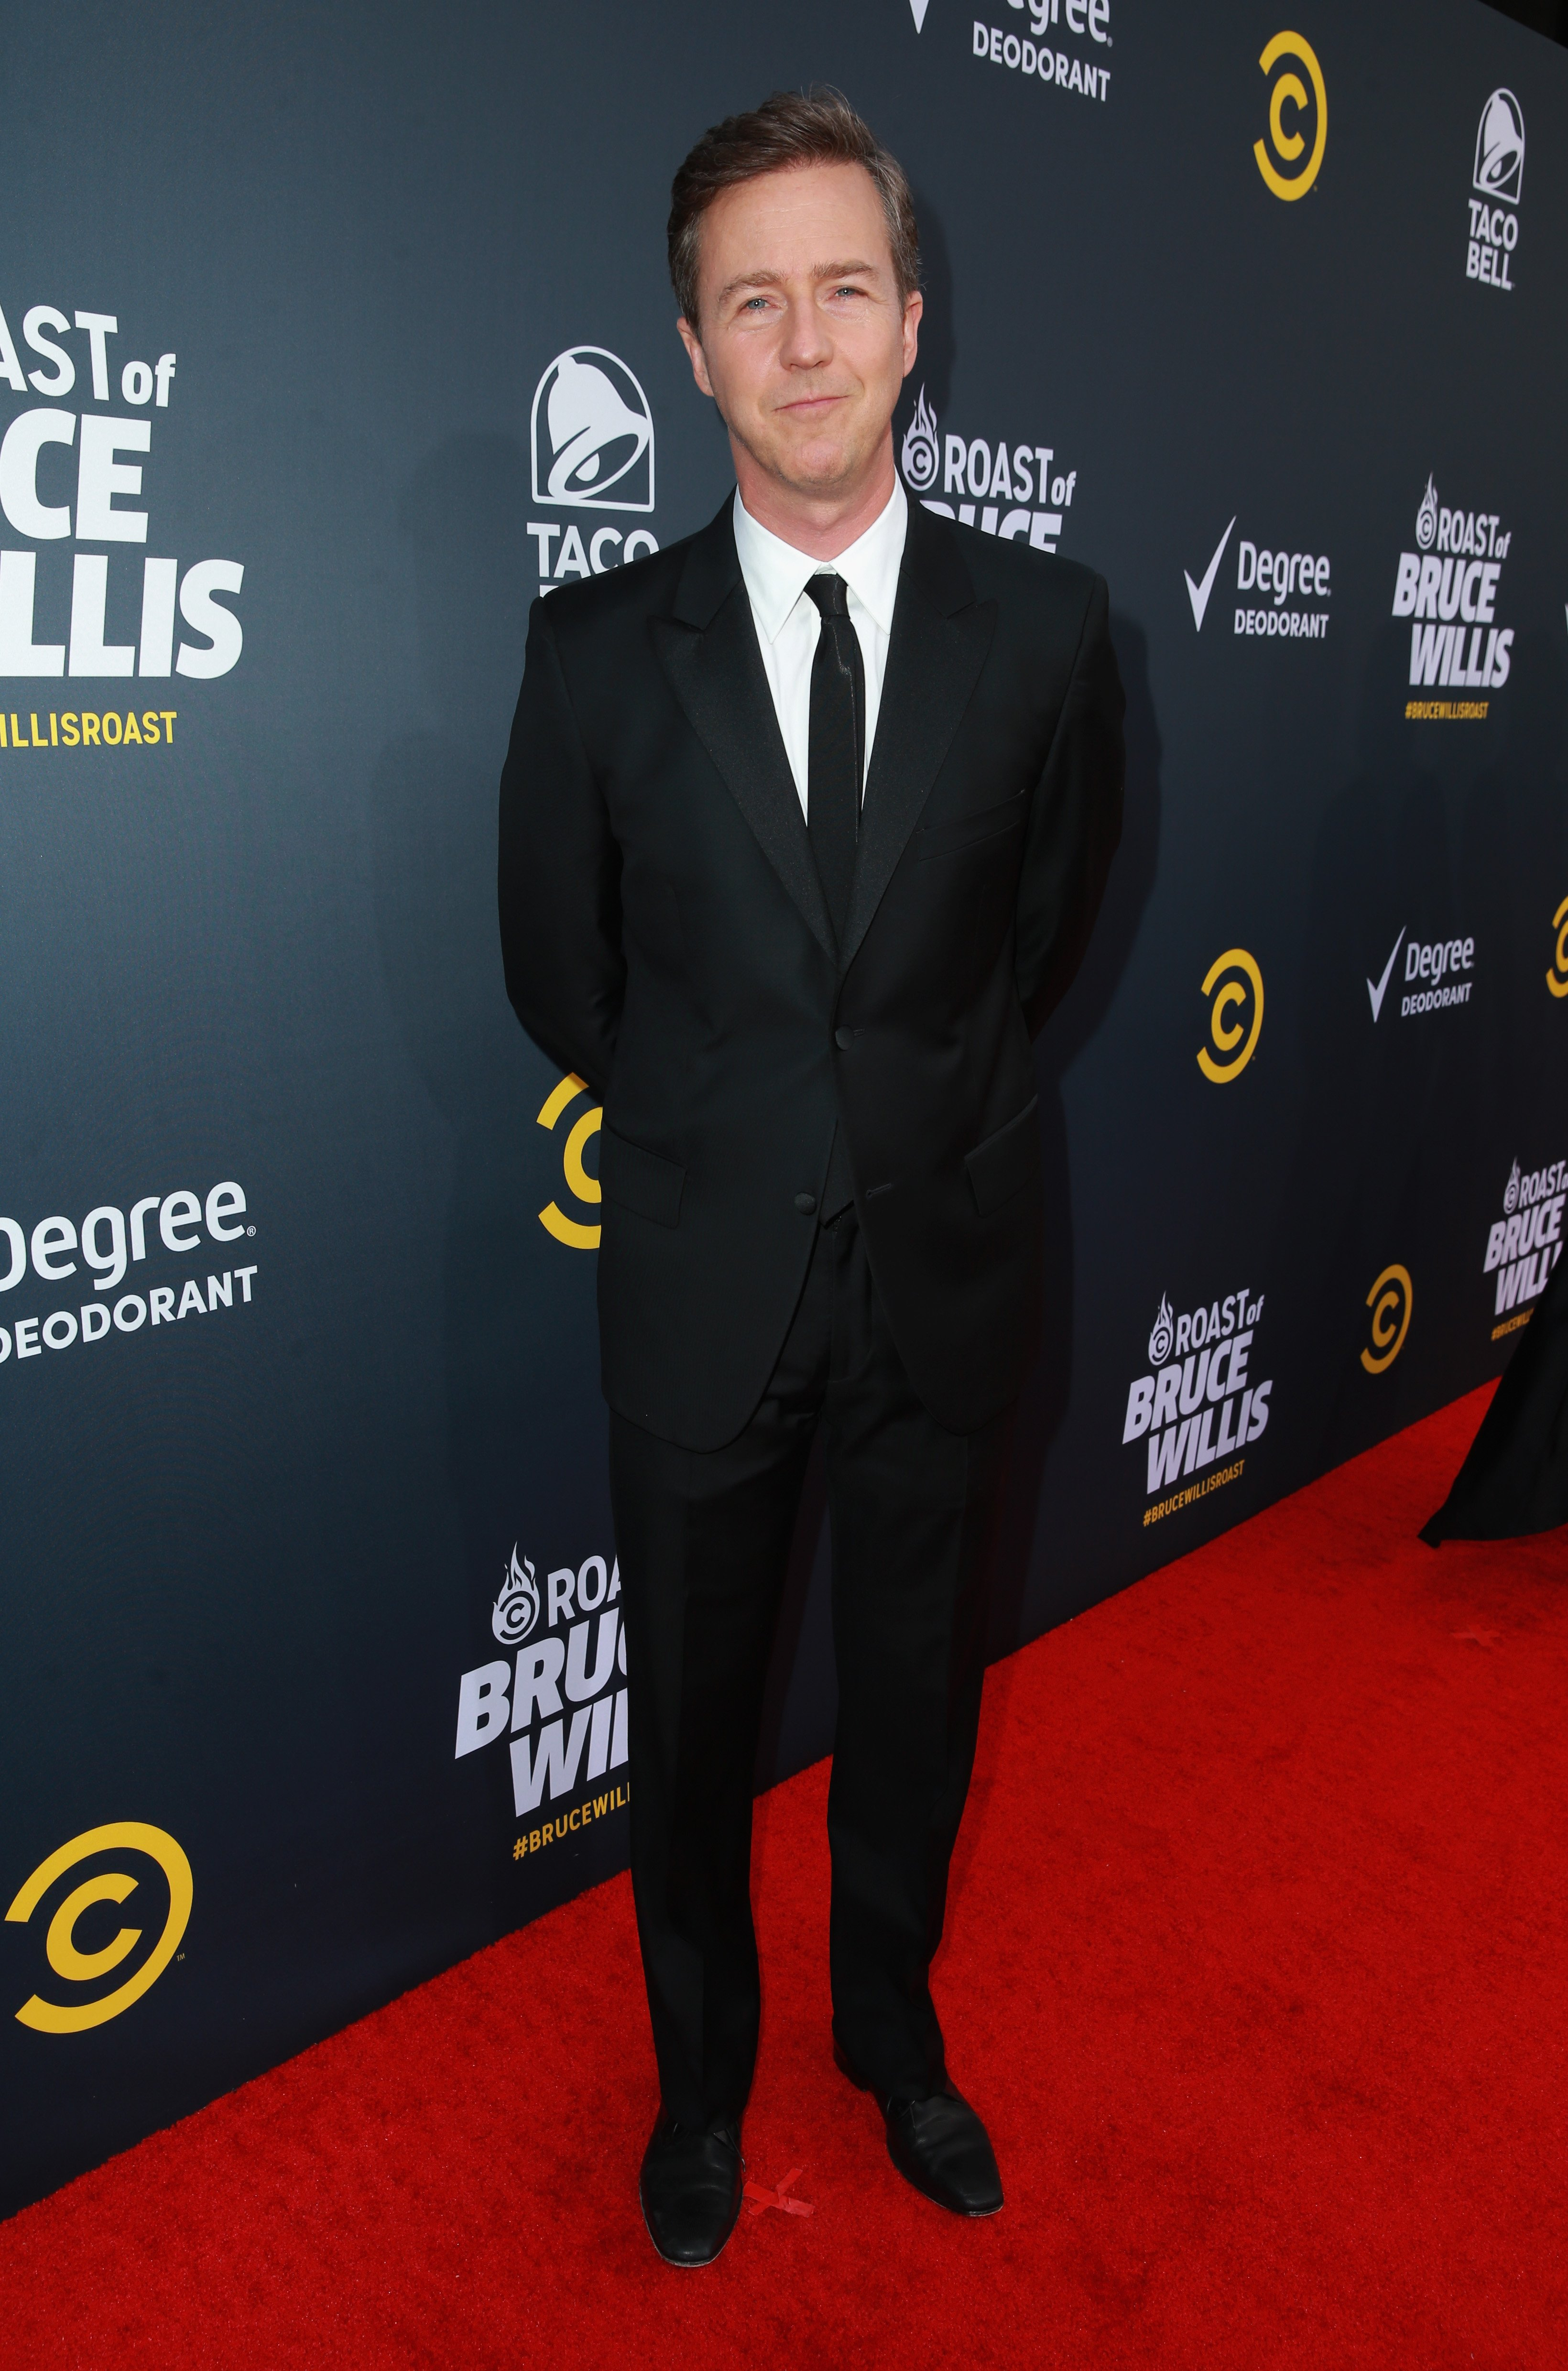 Edward Norton attends the Comedy Central Roast of Bruce Willis in Los Angeles, California on July 14, 2018 | Photo: Getty Images